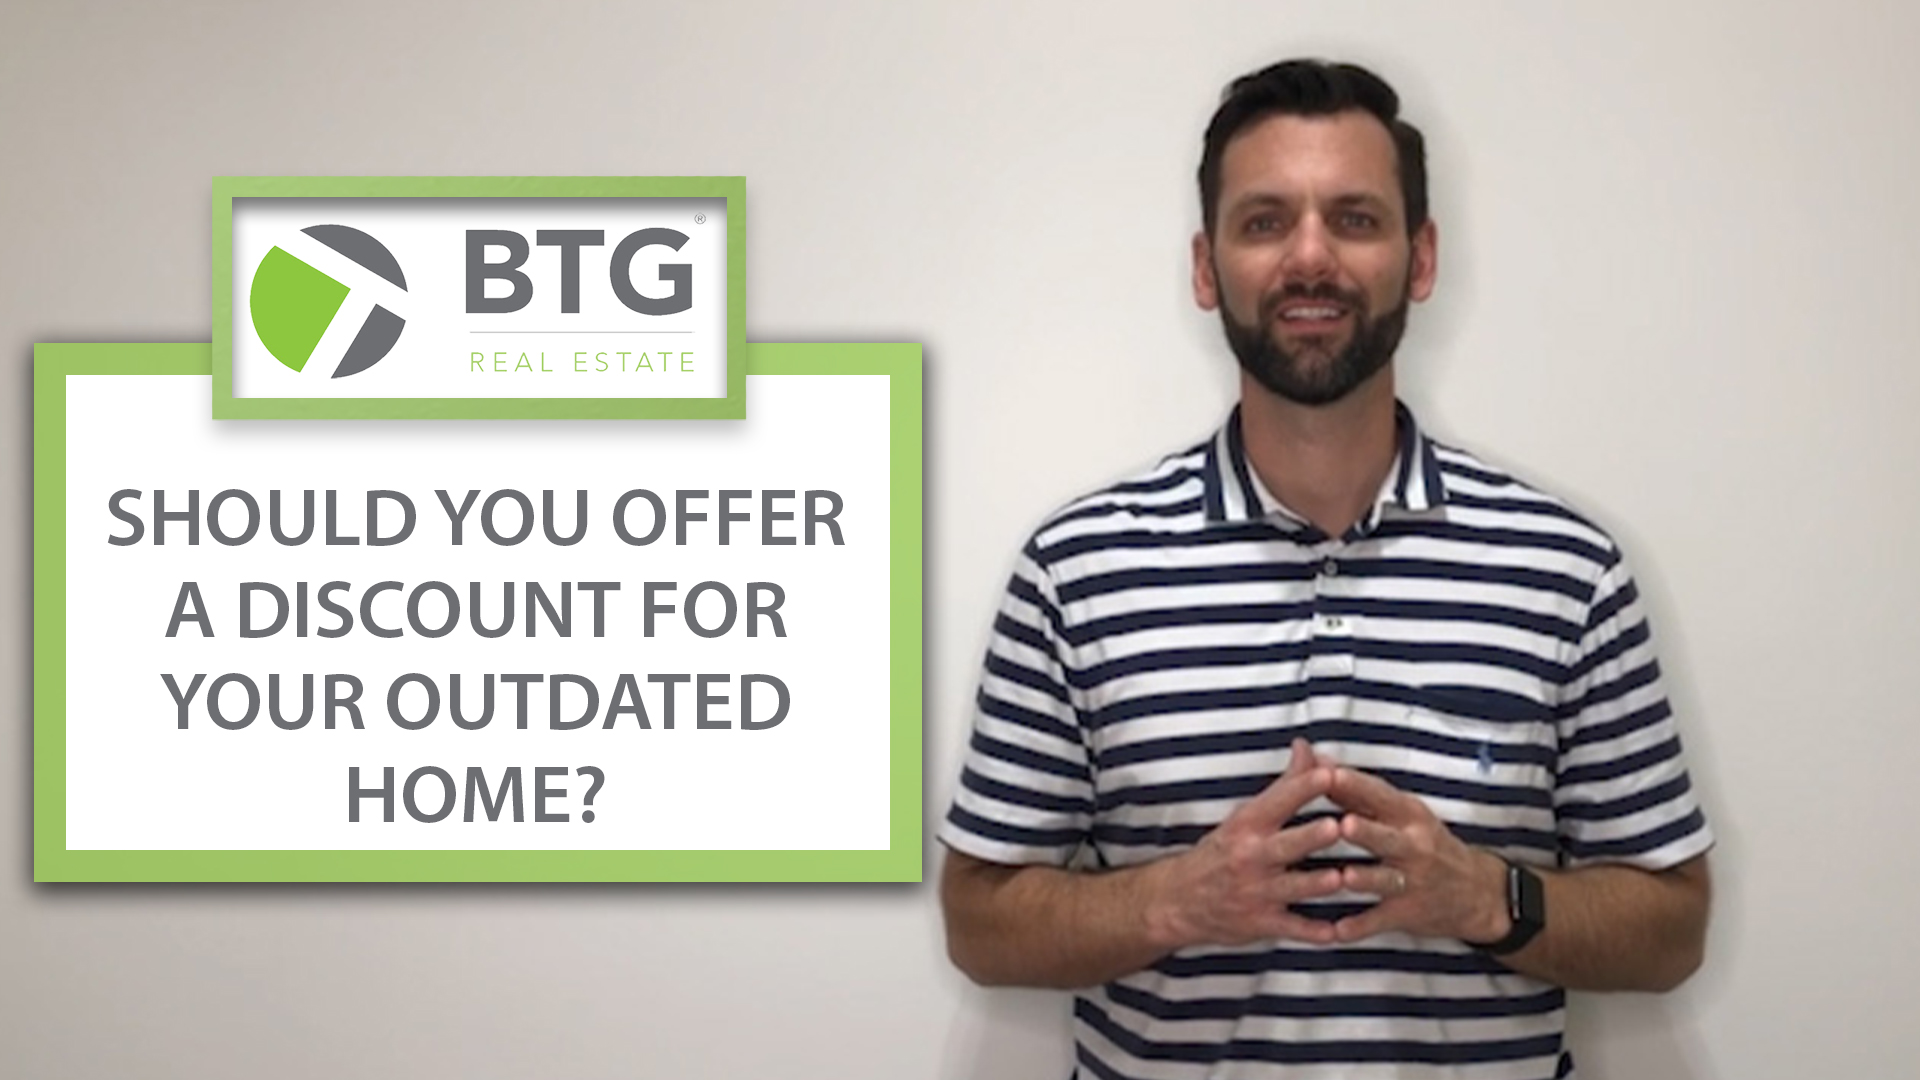 My Thoughts on Offering Discounts for Outdated Homes